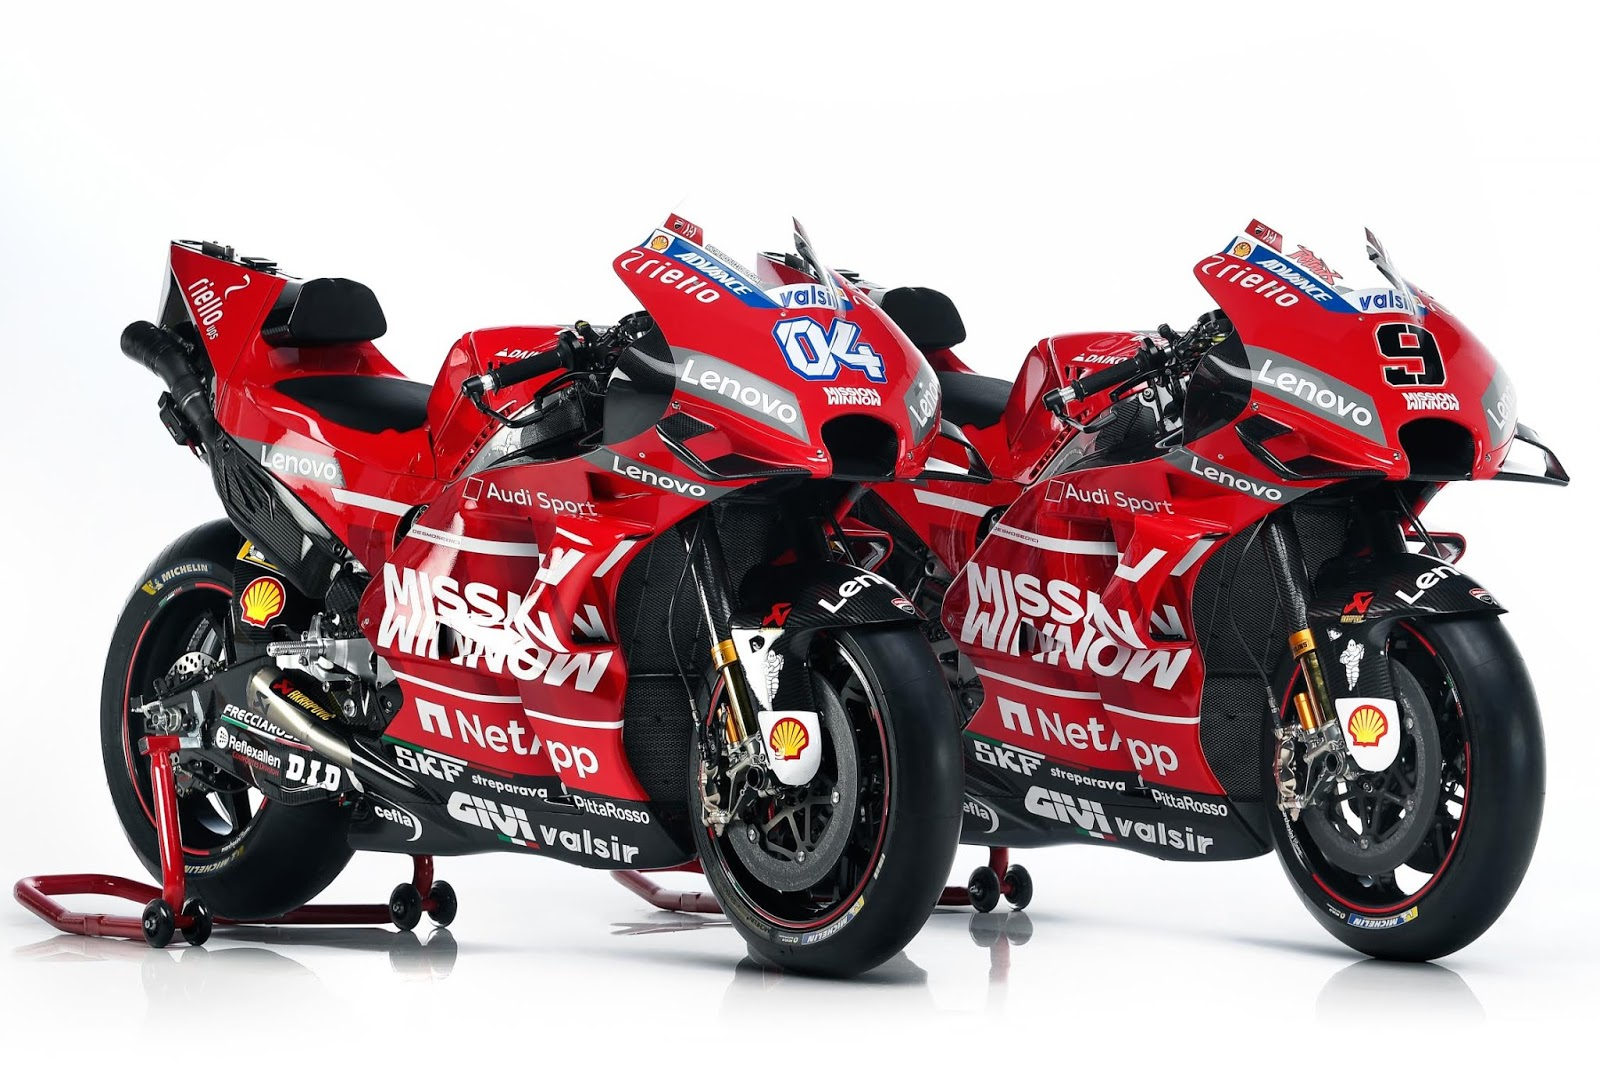 MotoGP : Galeri Foto high resolution Livery Ducati 2019